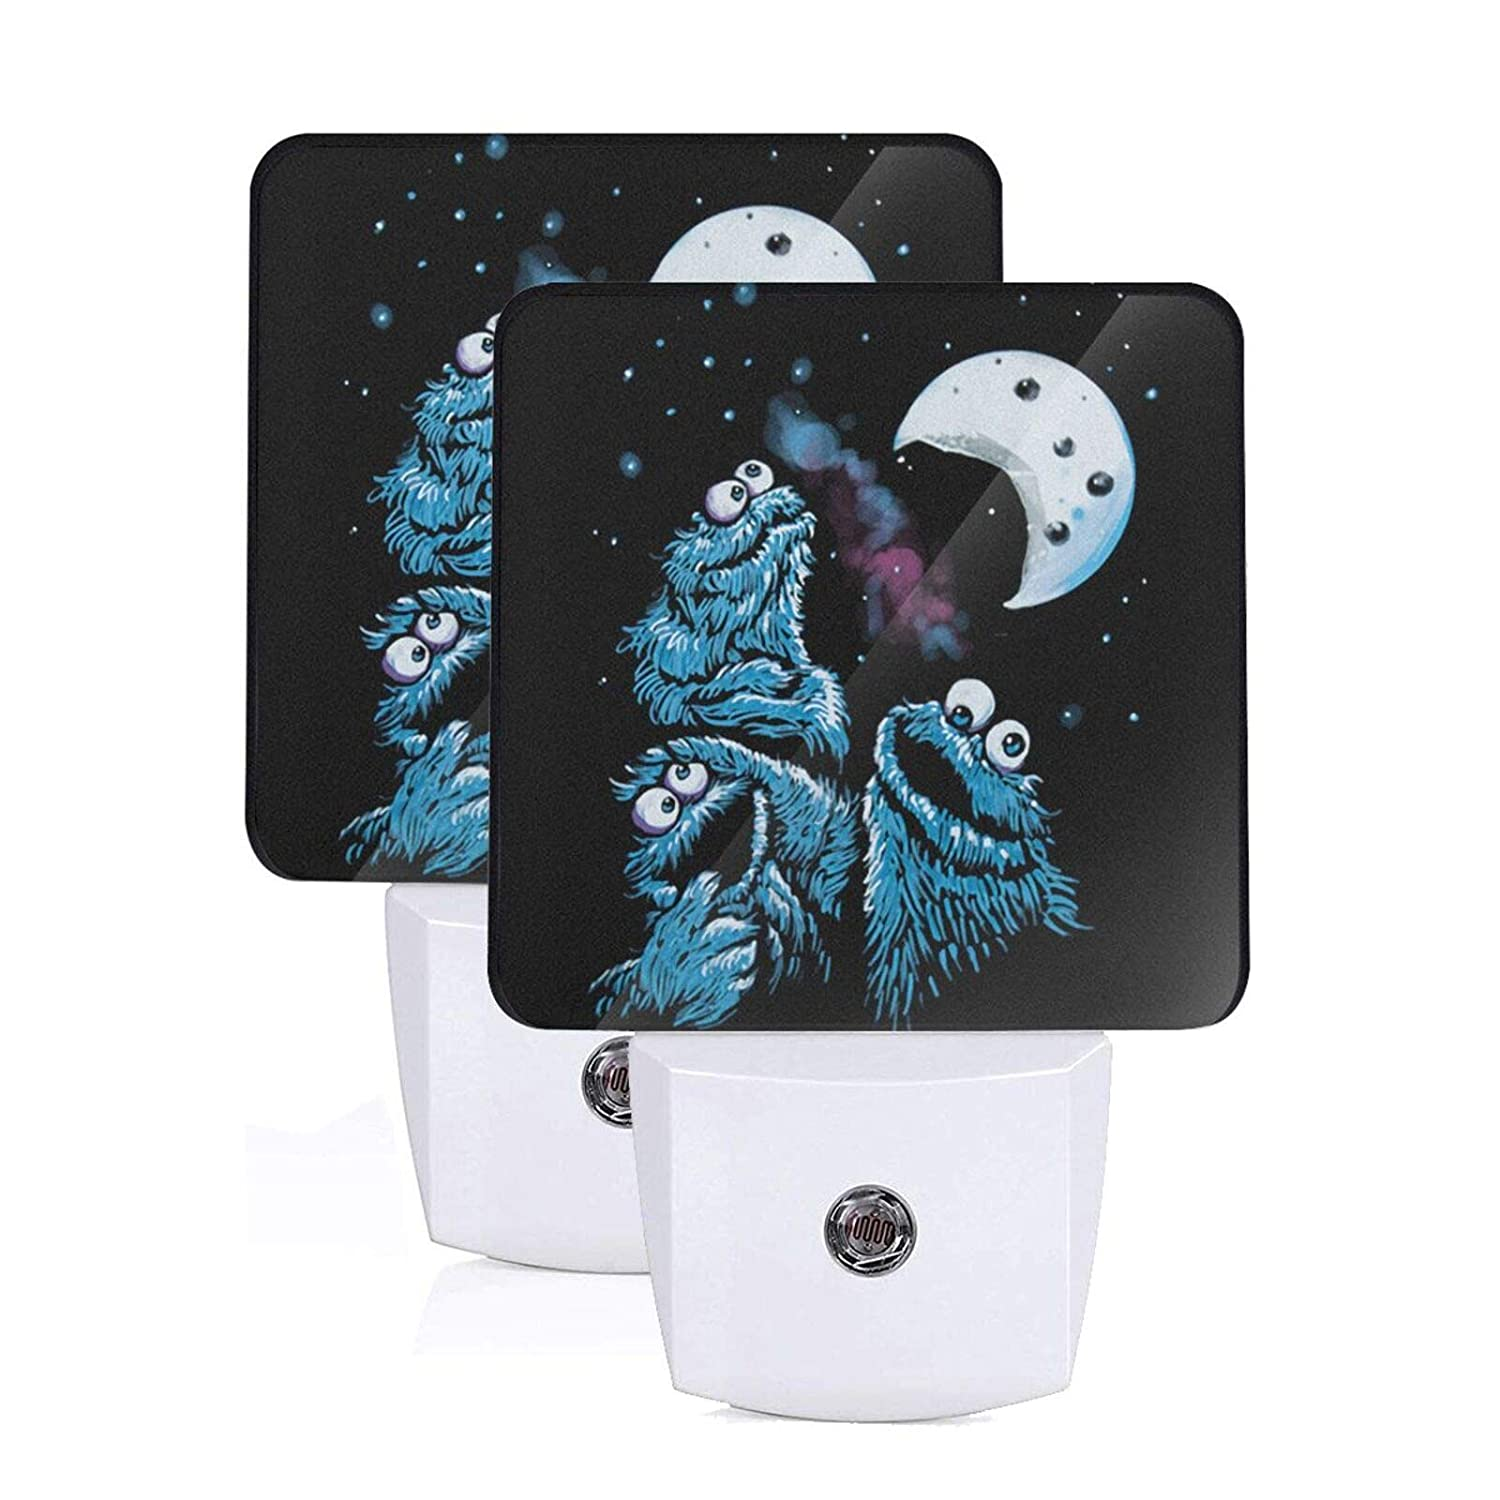 Cookie Monster Moon Plug-in Led Night Light with Auto Dusk to Dawn Sensor,Bedroom, Kids Room, Kitchen, Stairway, Adjustable Brightness 2 Pack